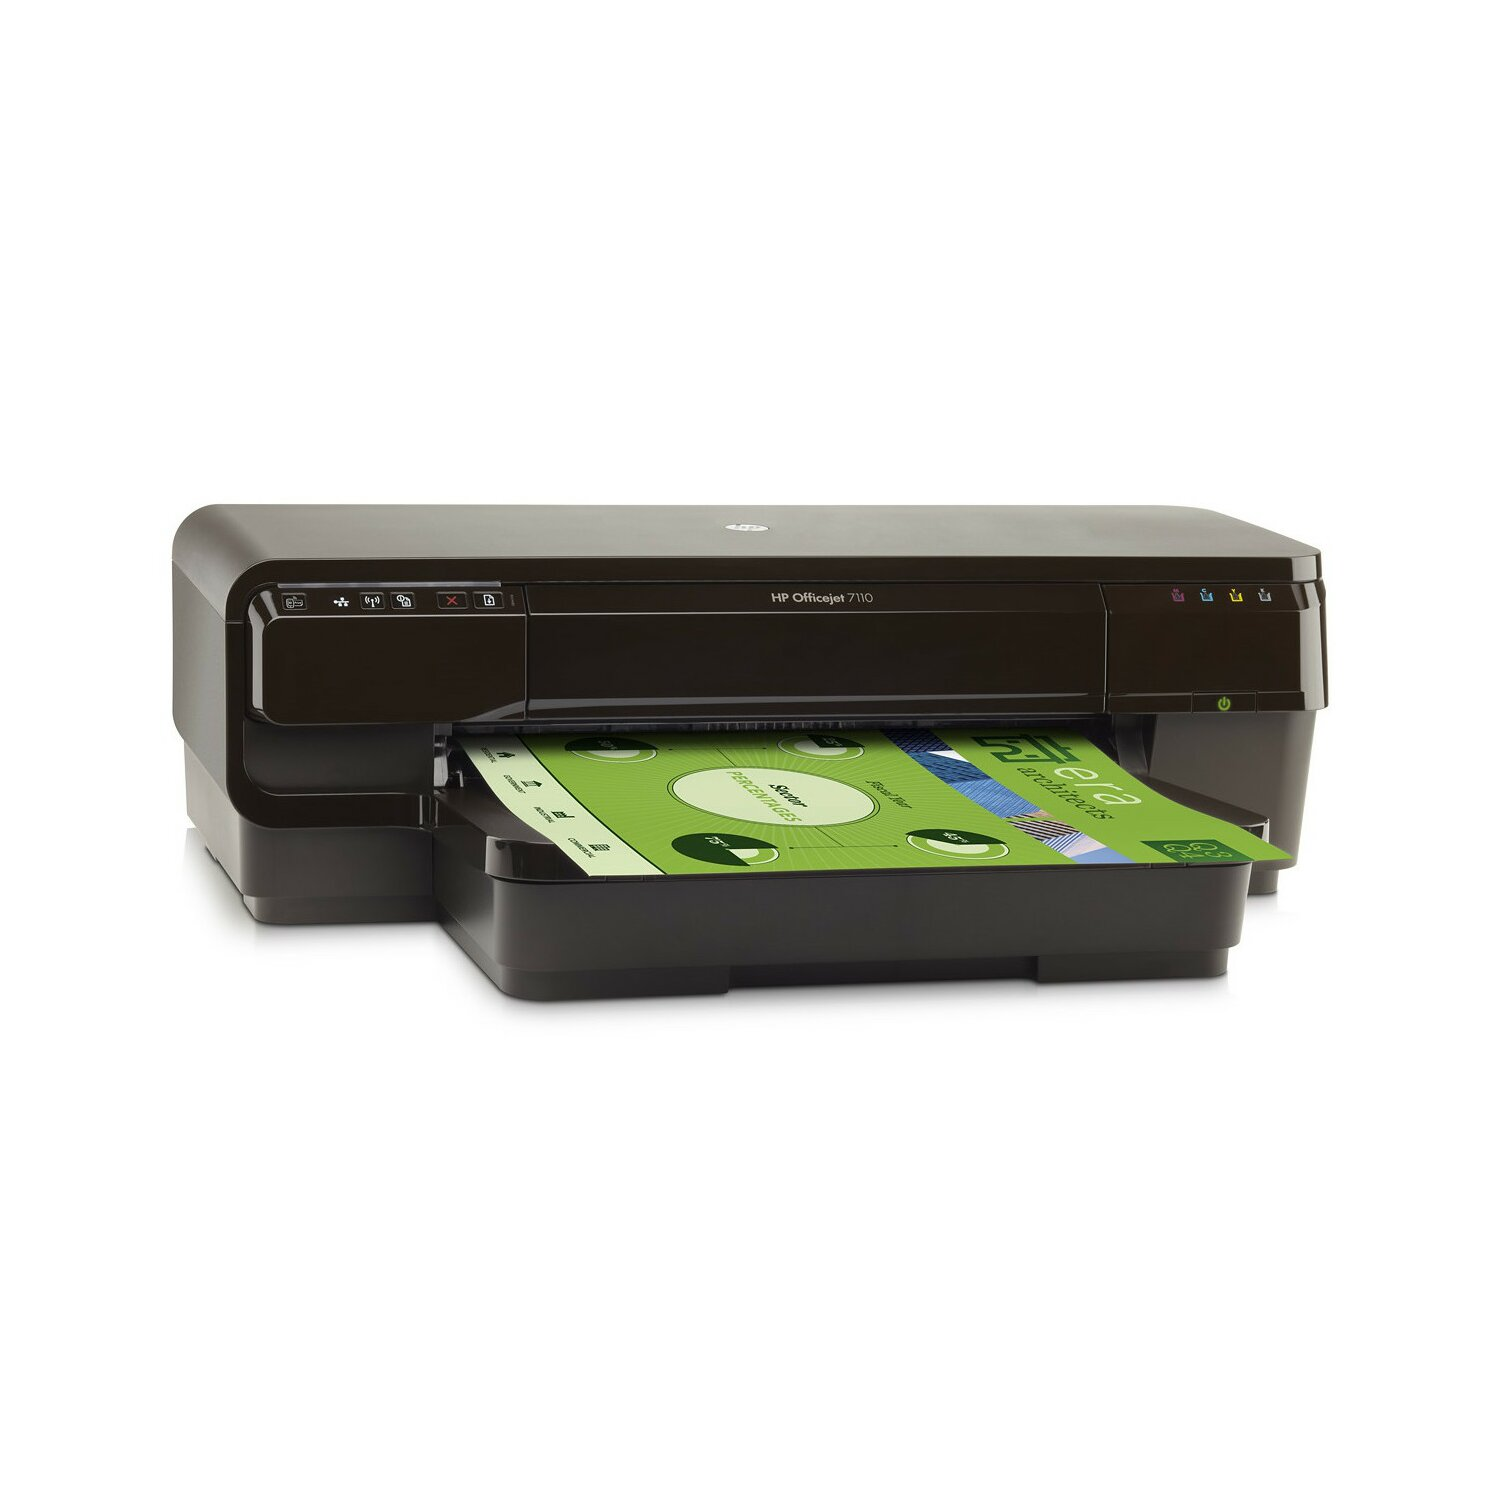 Drukarka atramentowa HP Officejet 7110 A3 Wide Format ePrinter